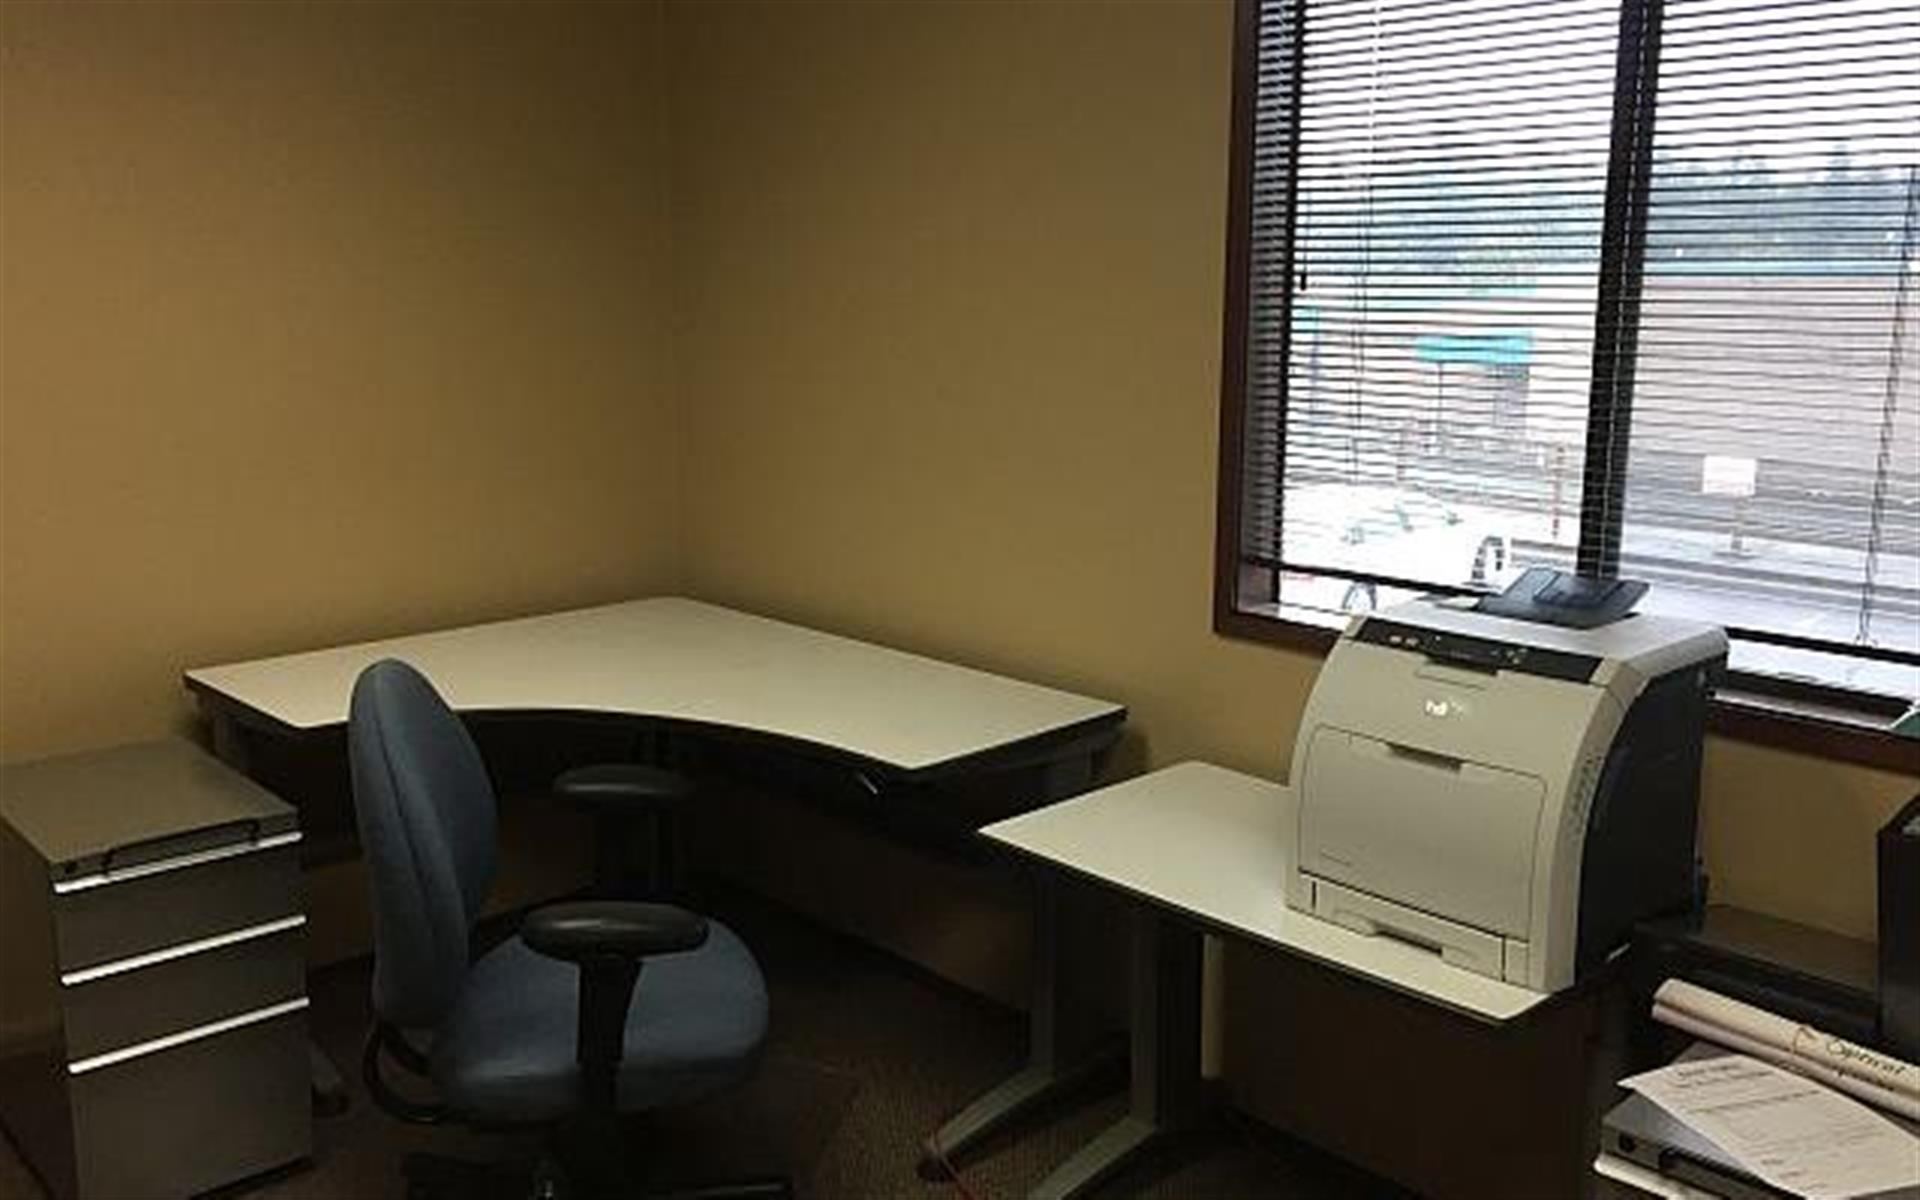 Stewart and Son Computer Services, LLC - Shared Office with Window